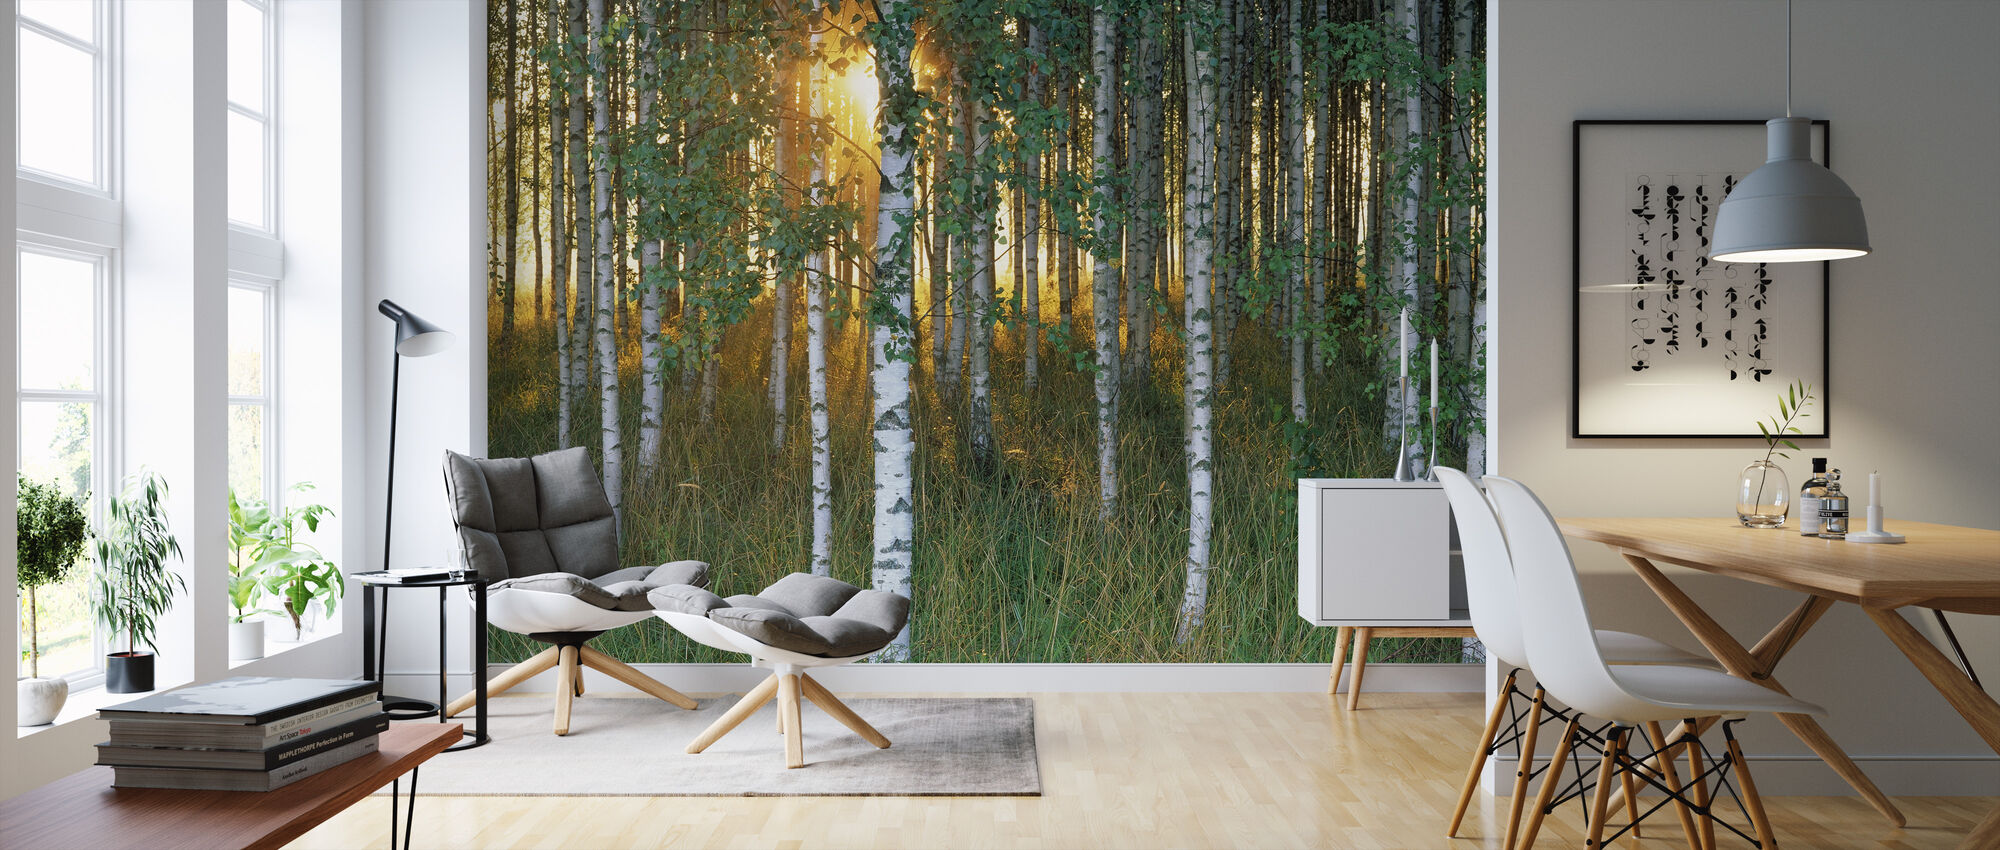 Sunbeam through Birch Forest - Wallpaper - Living Room